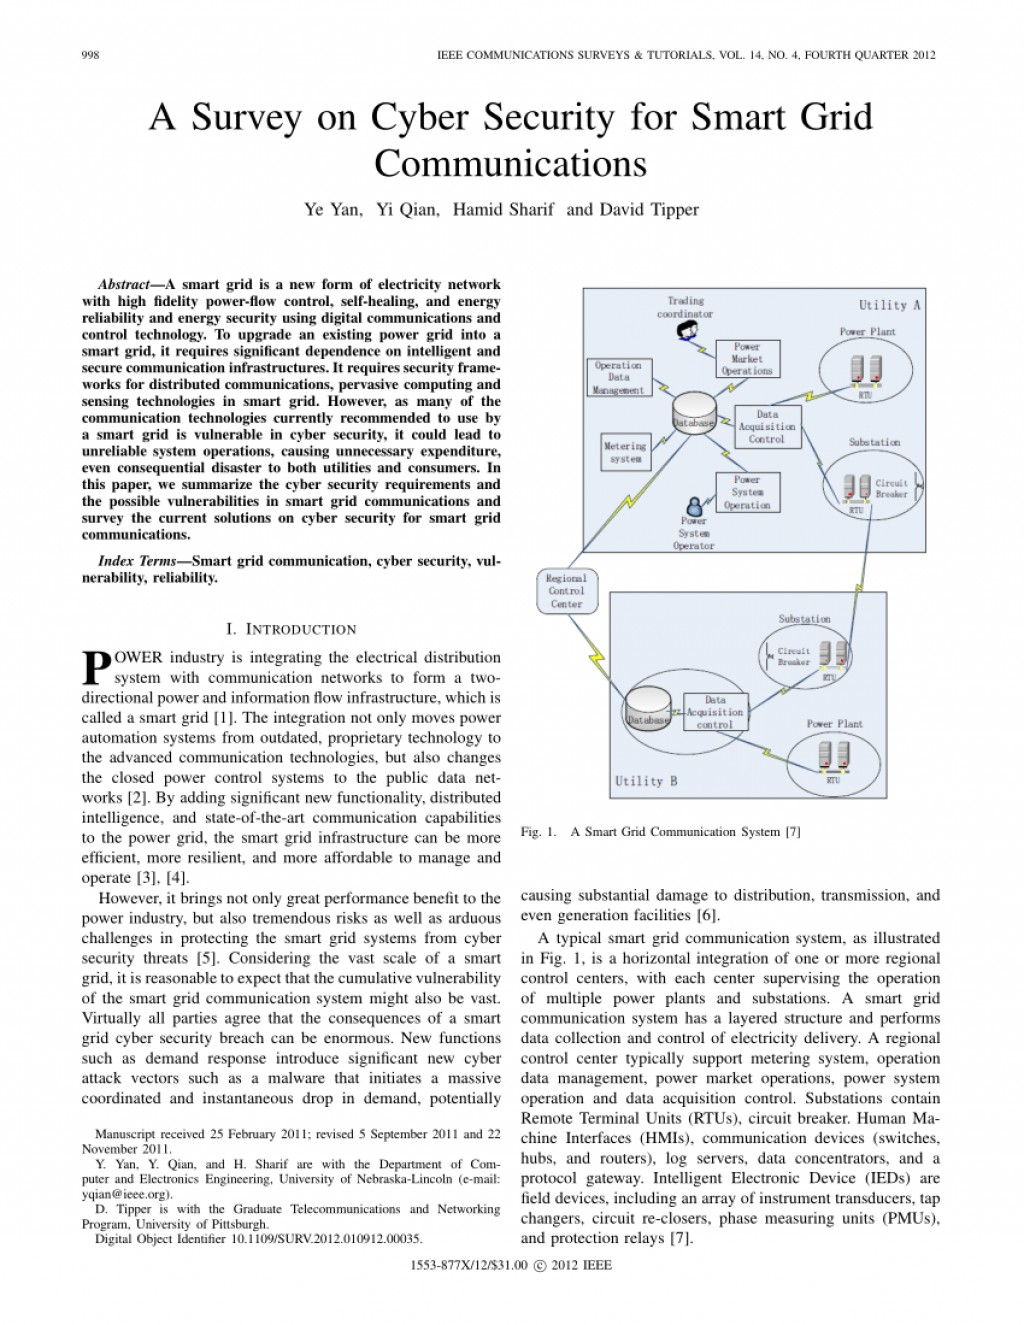 003 Ieee Research Paper On Cyber Security Pdf Breathtaking Network Large